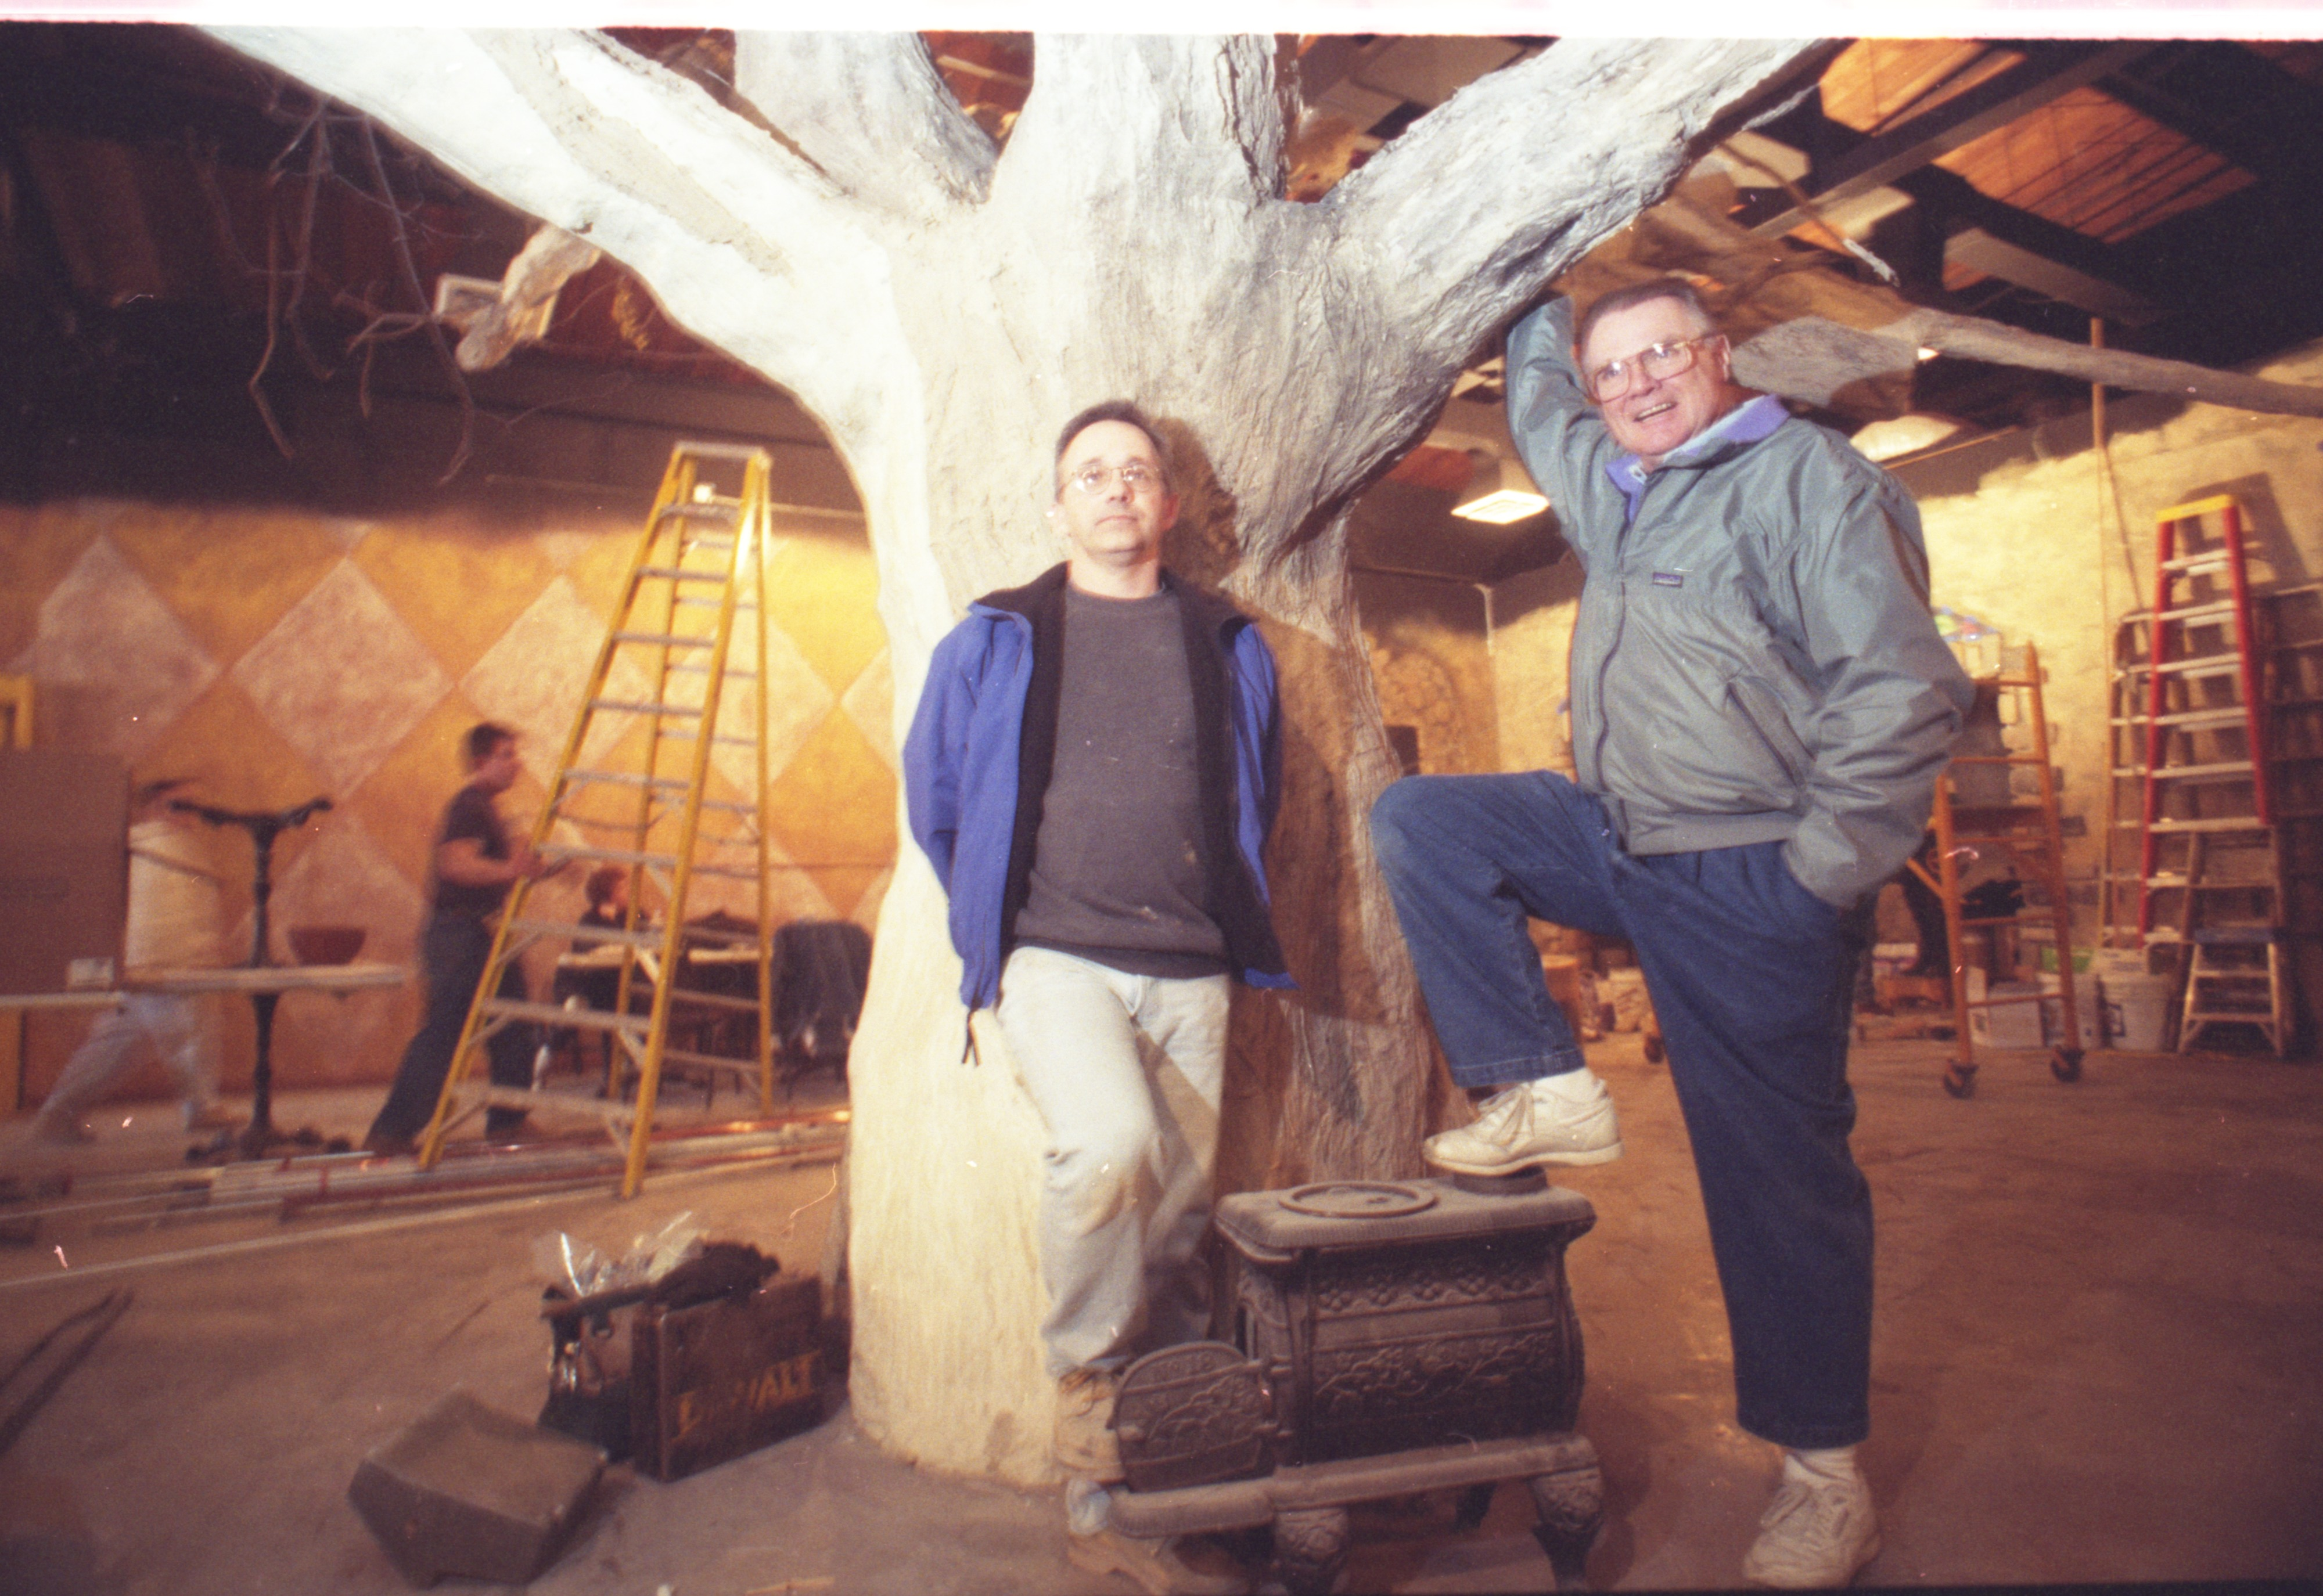 Interior Designer Ray Byers and Owner Dieter Boehm at Arriba Restaurant, May 1998 image